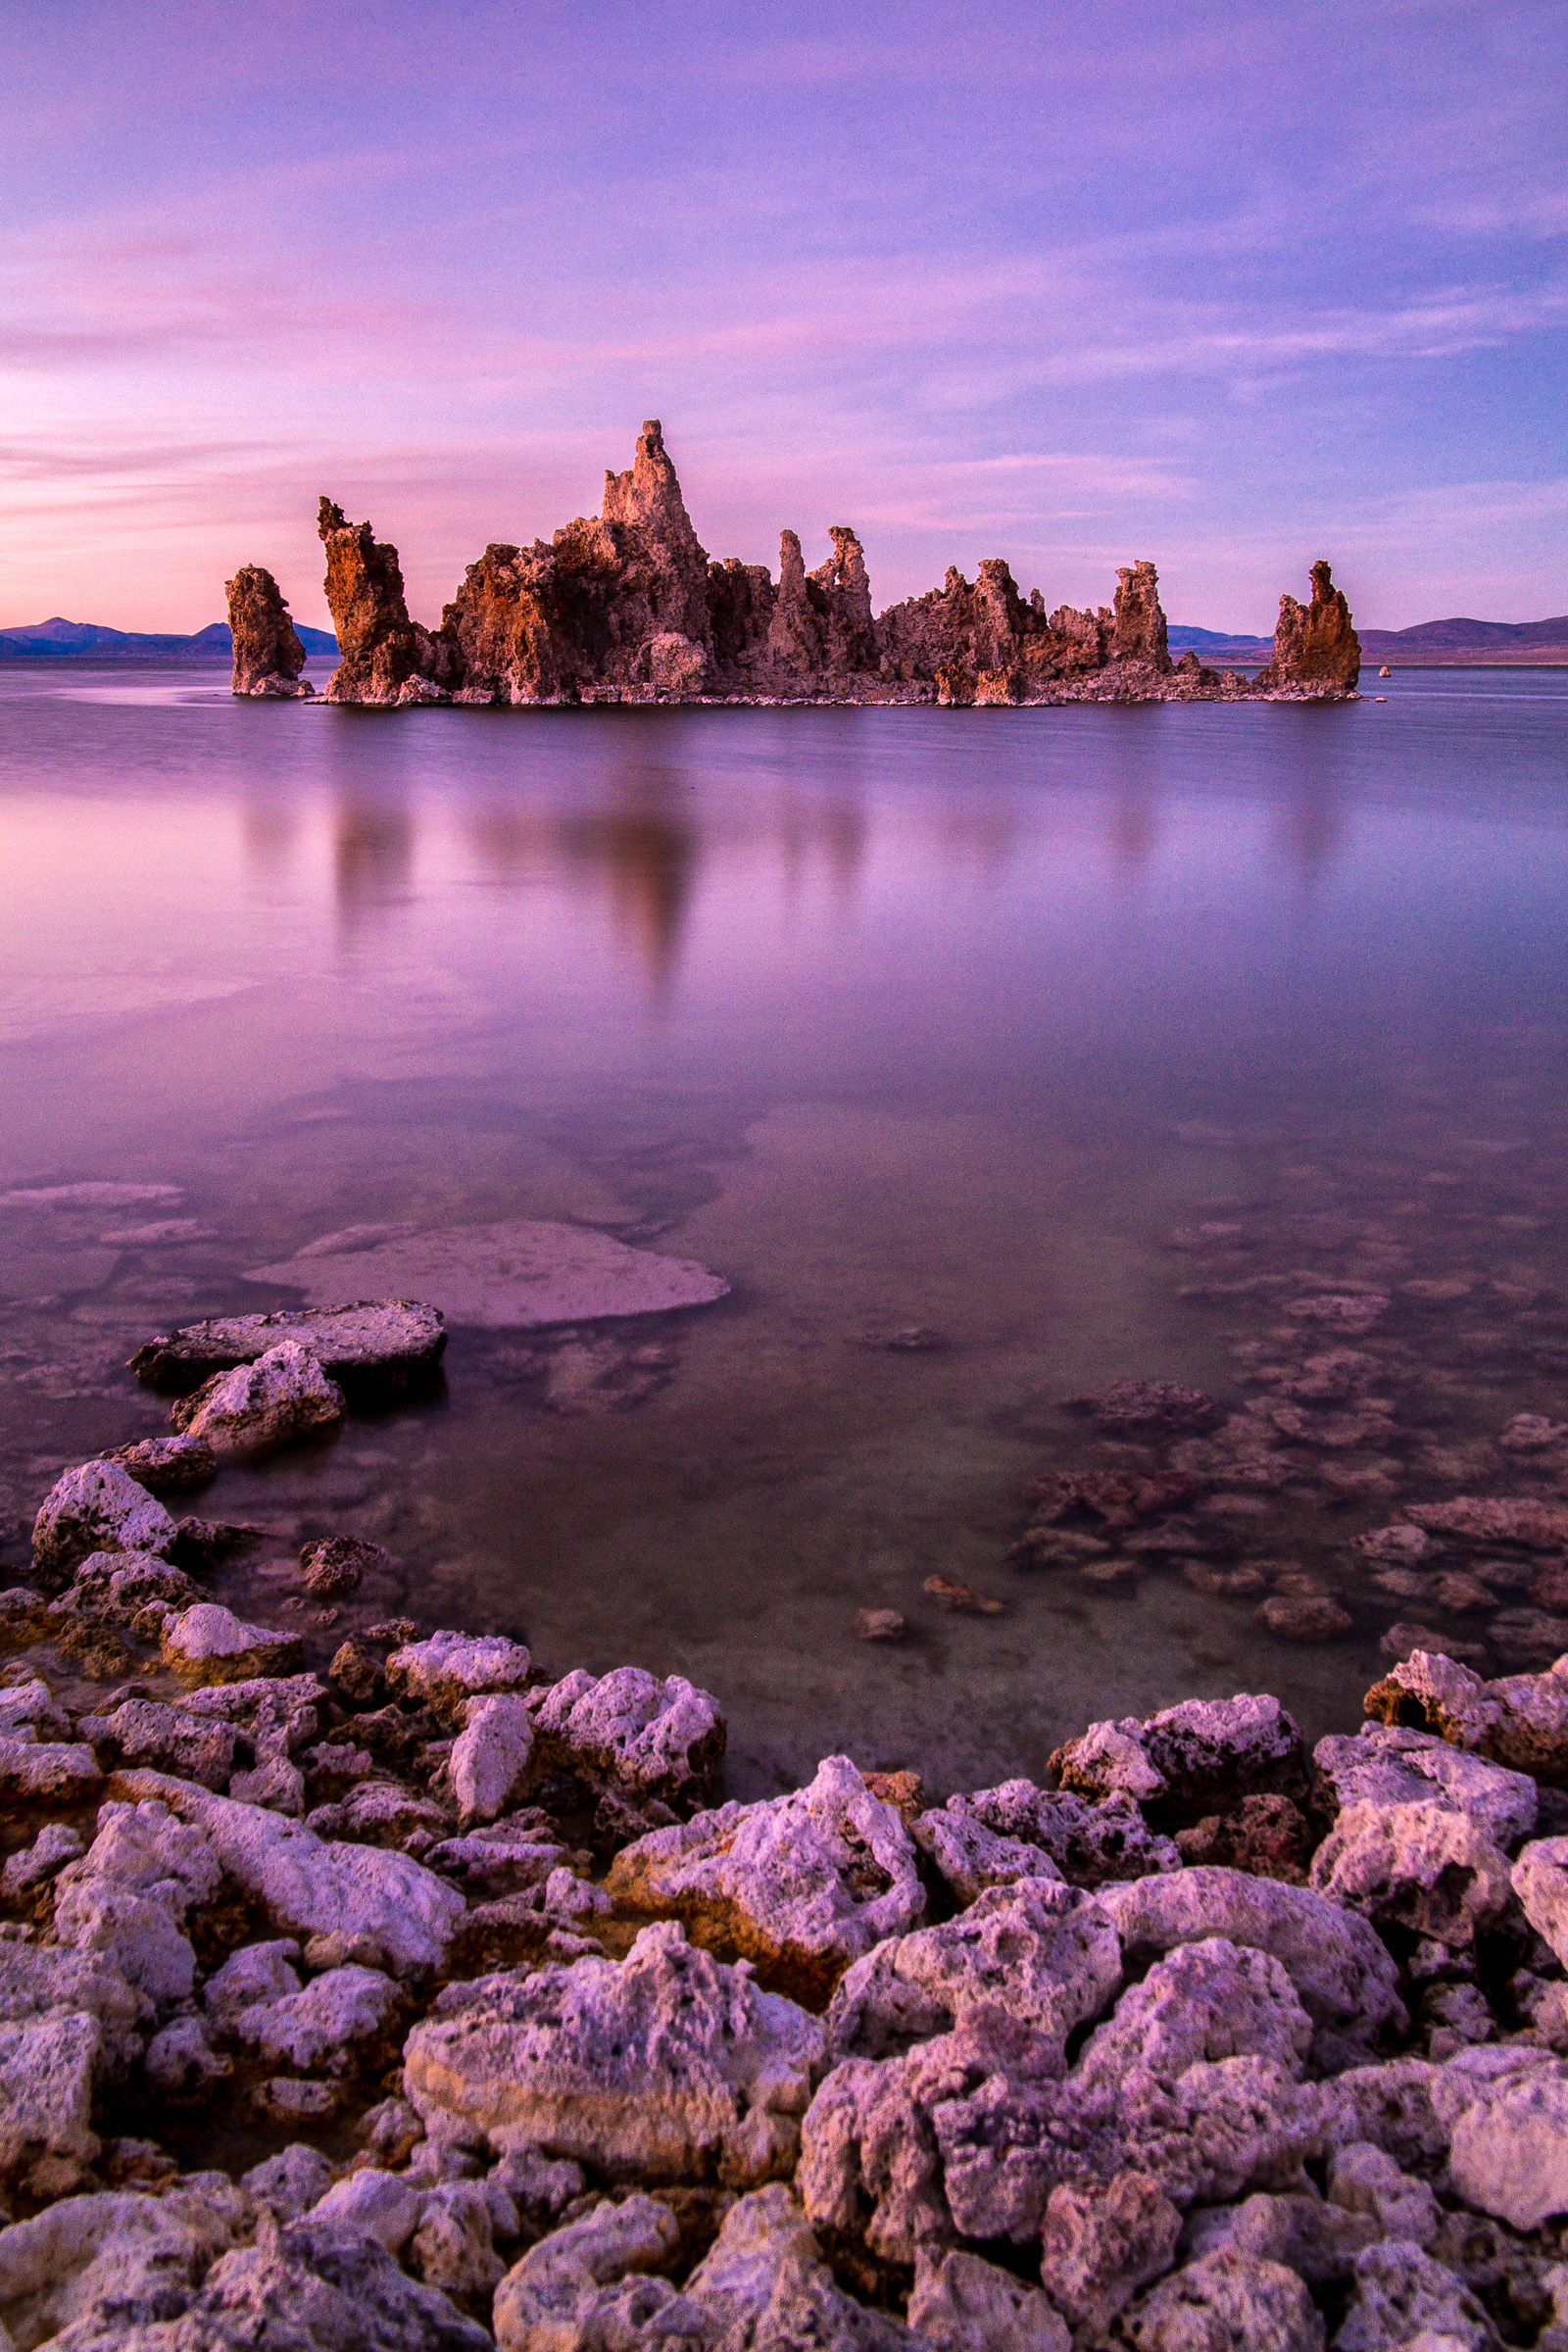 Wasim-Muklashy-Photography_Mono-Lake_Take2-SAM_1595-Edit.jpg